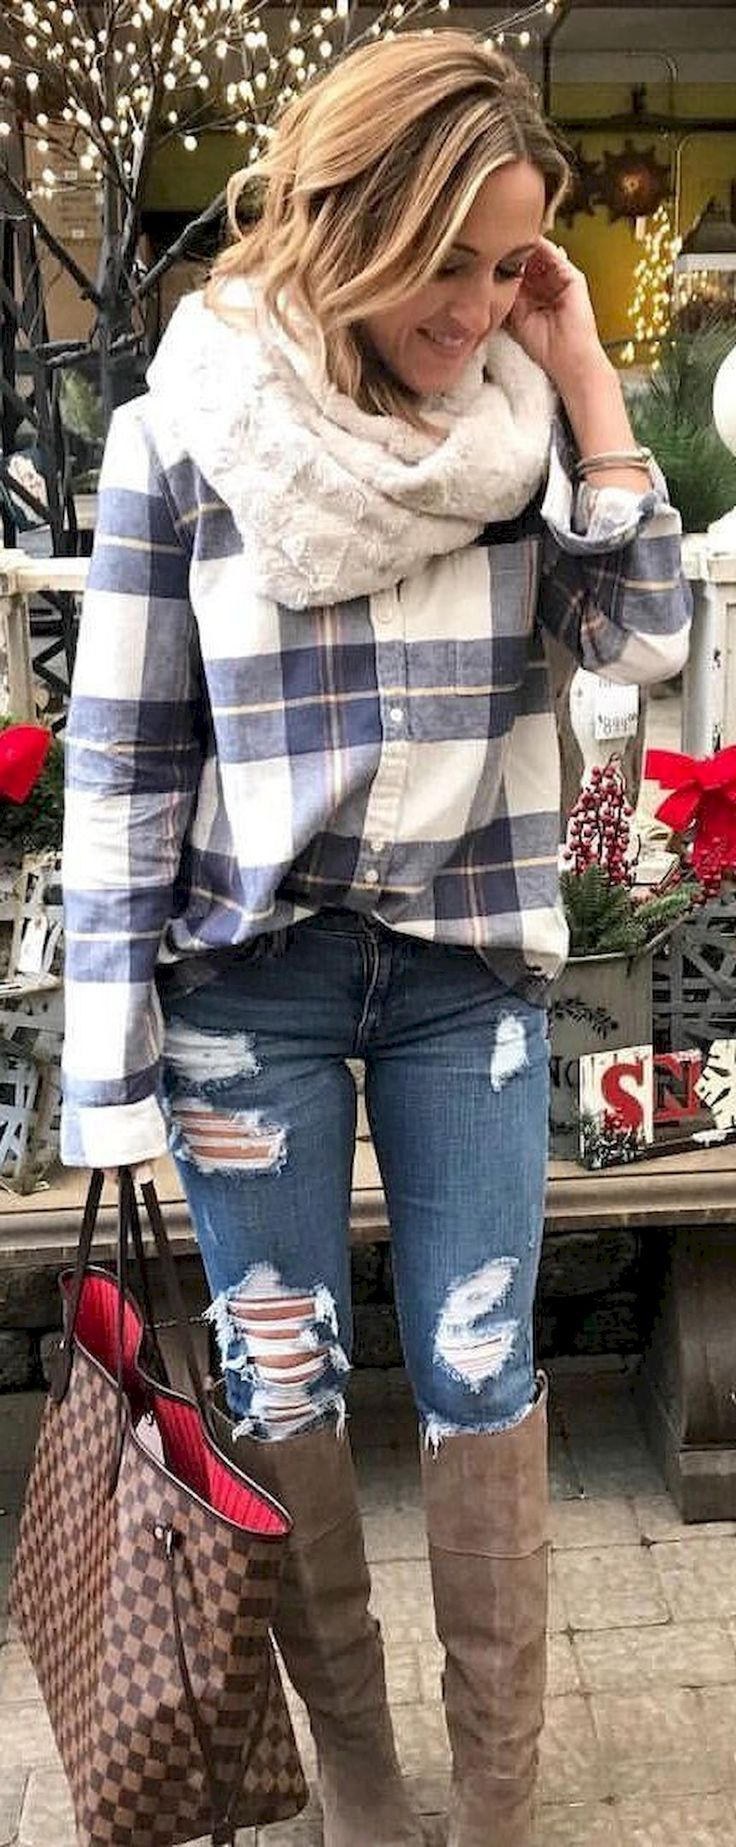 Gorgeous 53 Best Daily Outfit to Wear Flannel Shirt For Woman #Best #Daily #Flanel #Outfit #Shirt #Wear #Woman